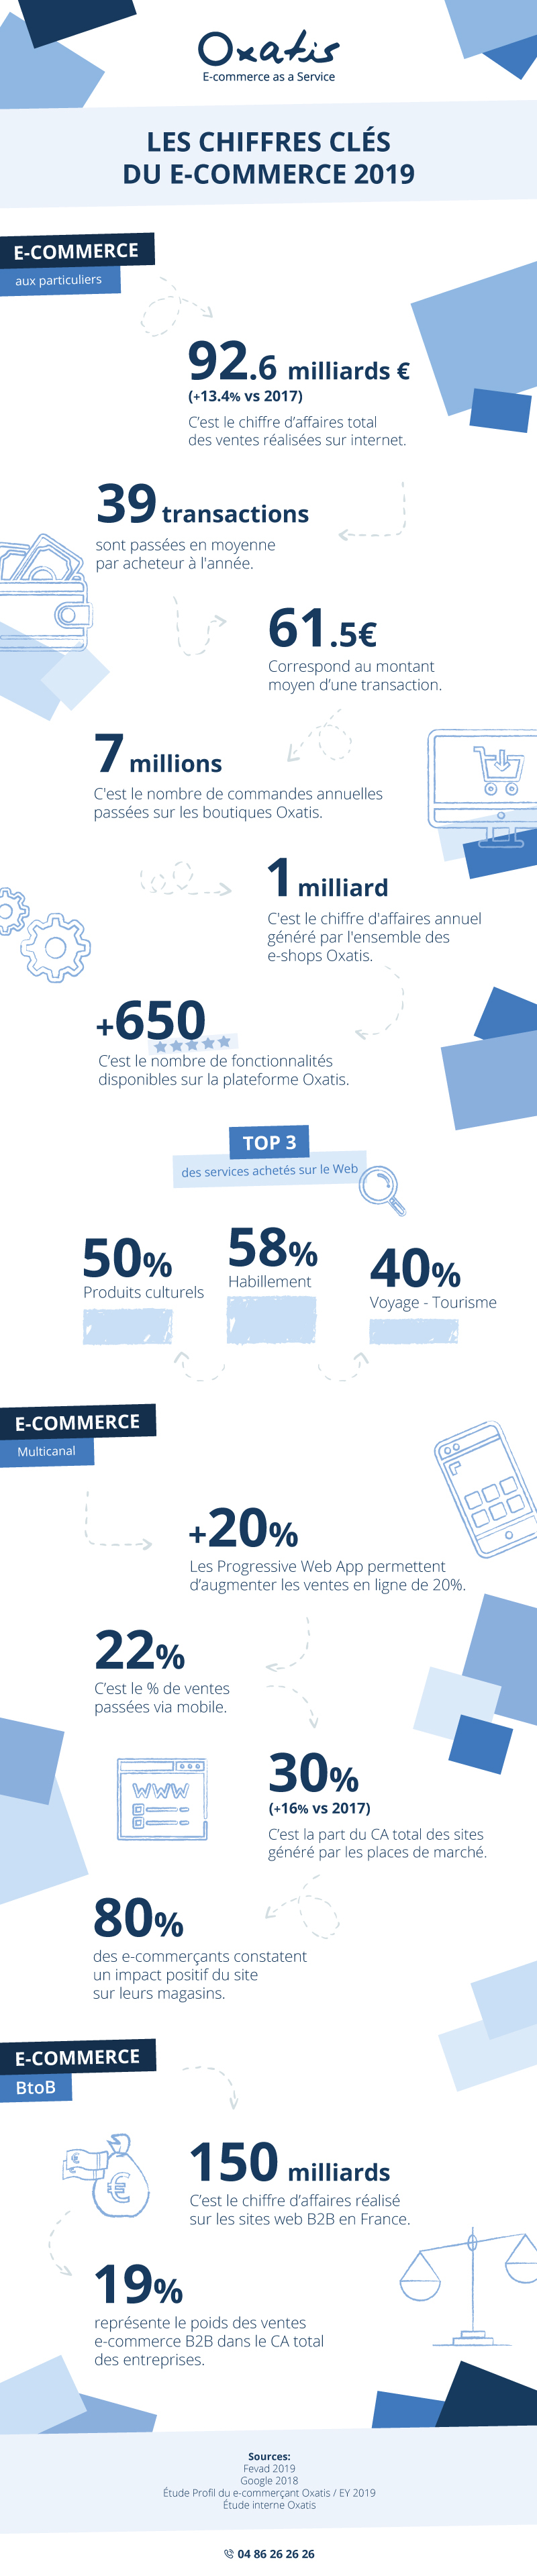 Infographie-chiffres-cles-V3